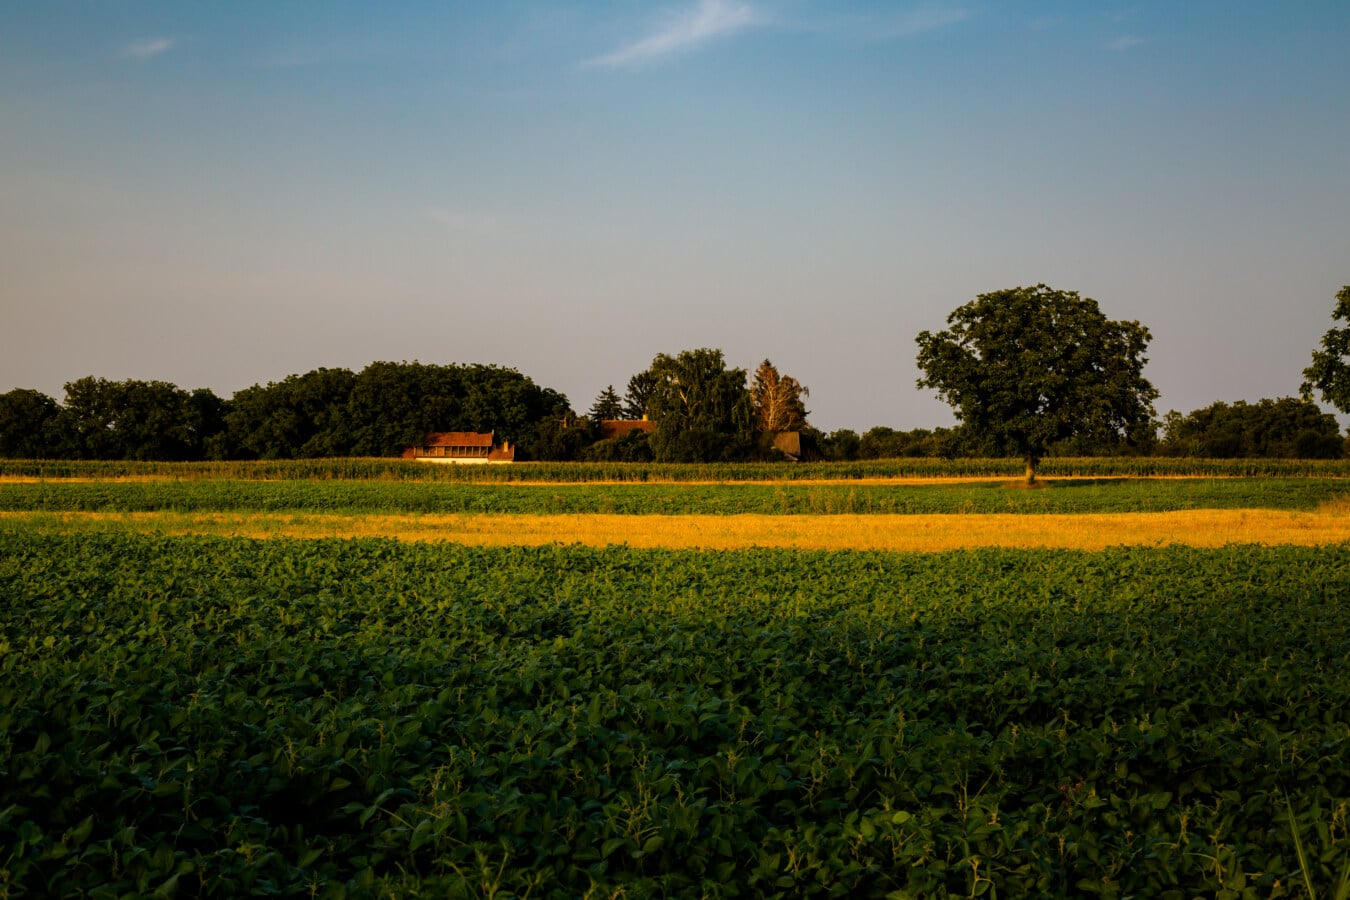 rural, field, farm, landscape, agriculture, summer, tree, countryside, horizon, spring